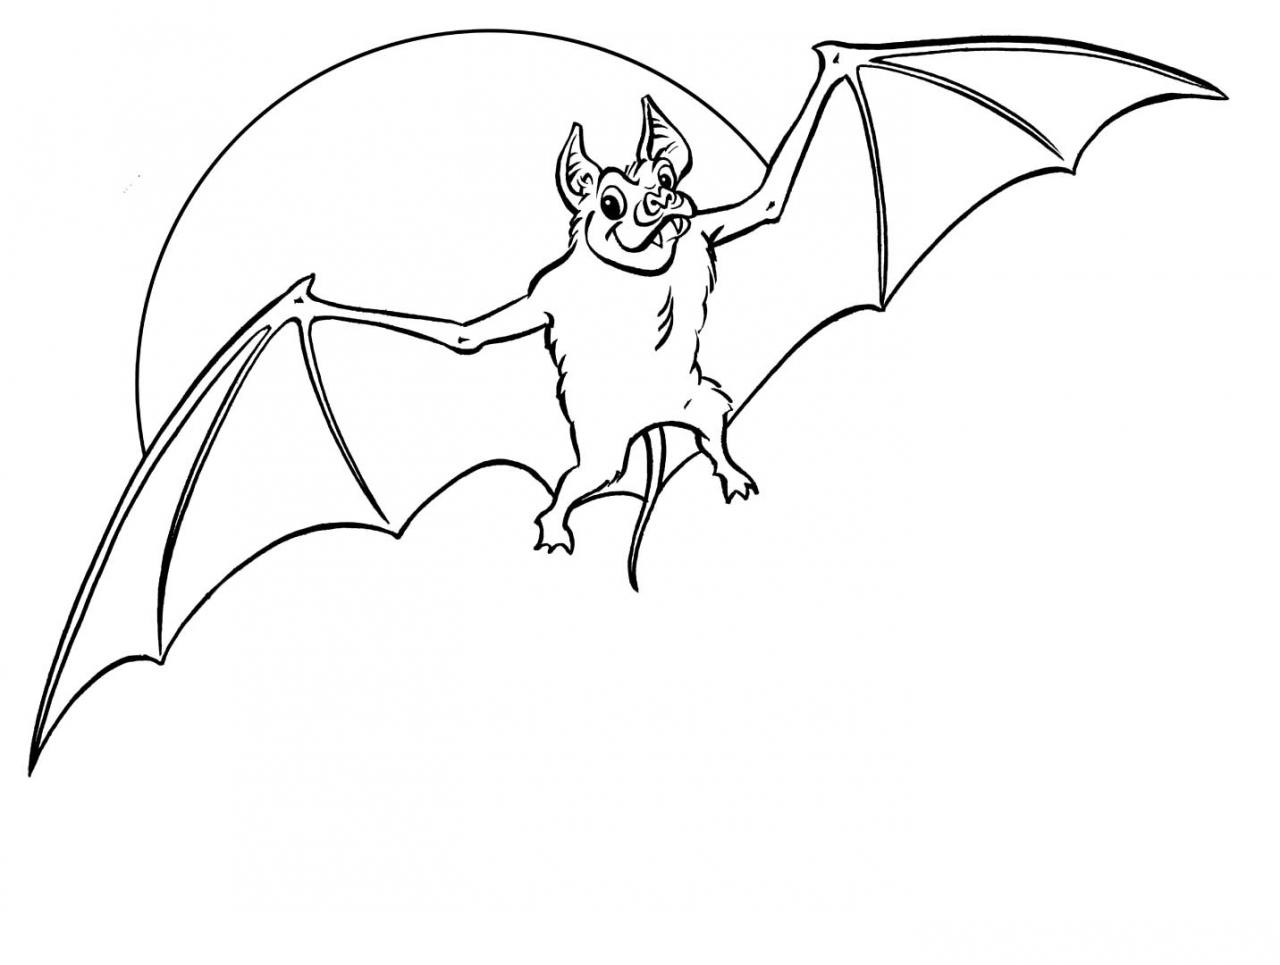 halloween bats coloring pages halloween bats drawing at getdrawings free download pages coloring bats halloween